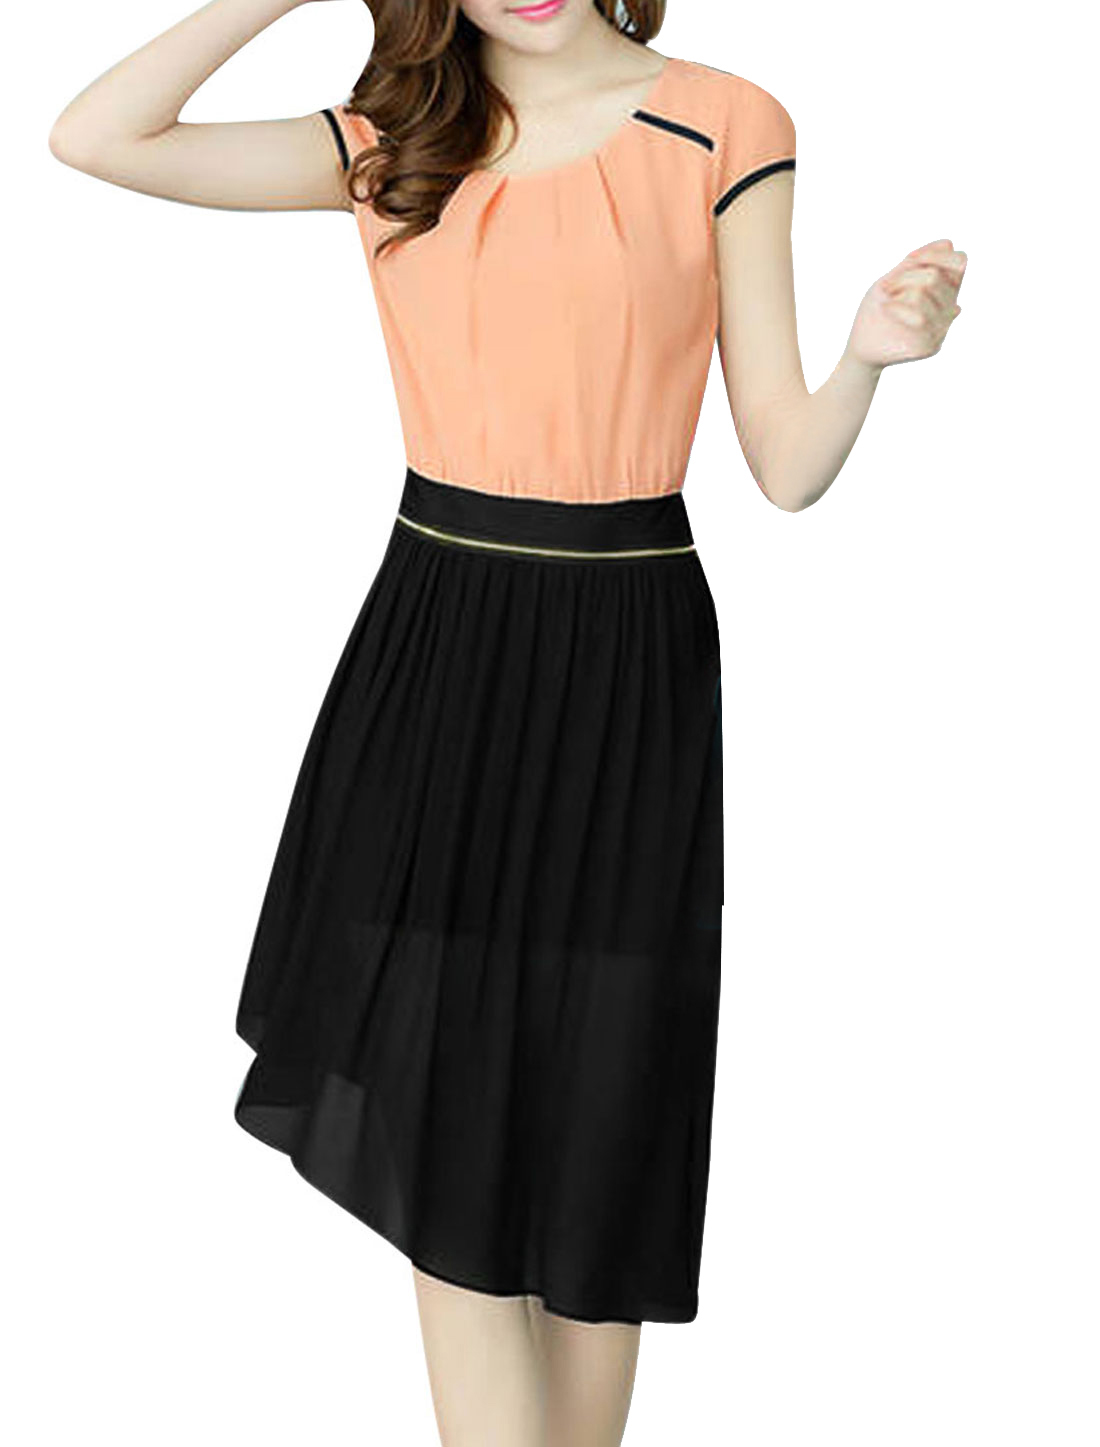 Woman Round Neck Cap Sleeve Irregular Hem Pink Black Convertible Mini Dress S